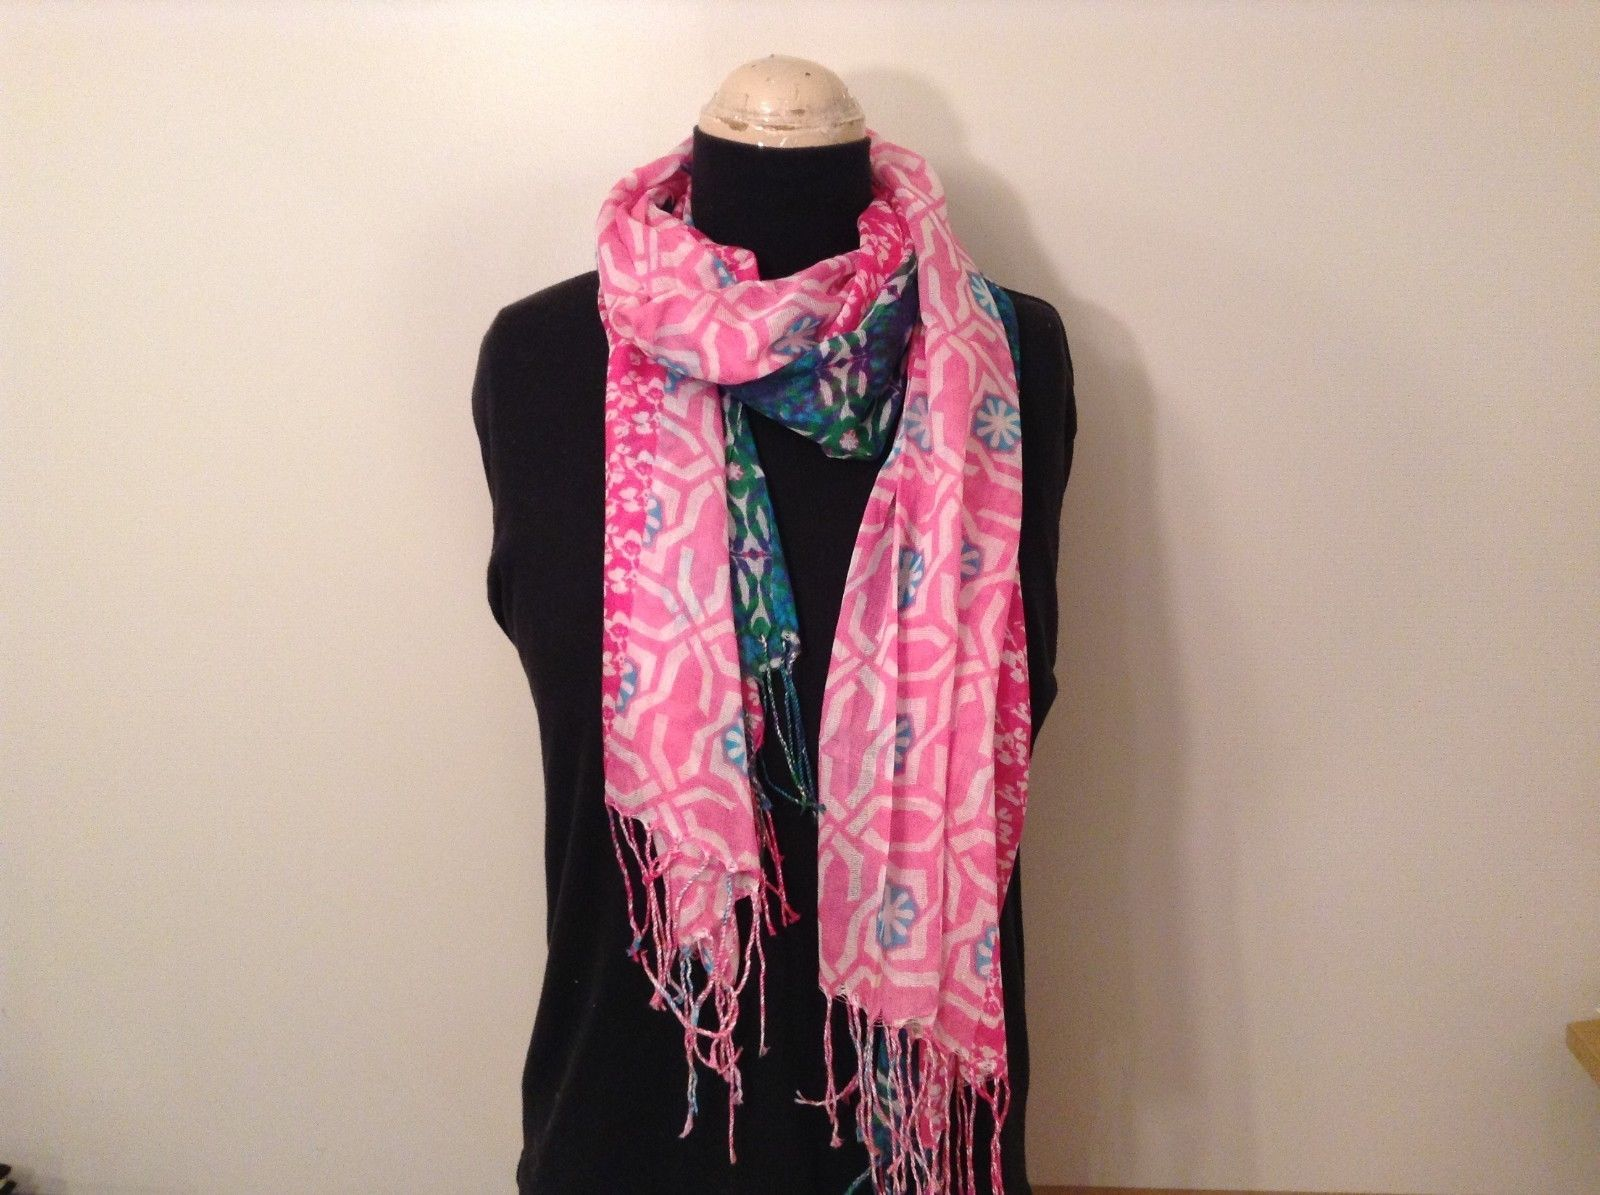 Batik Style Oblong lightweight Spring Scarf  in choice of colors